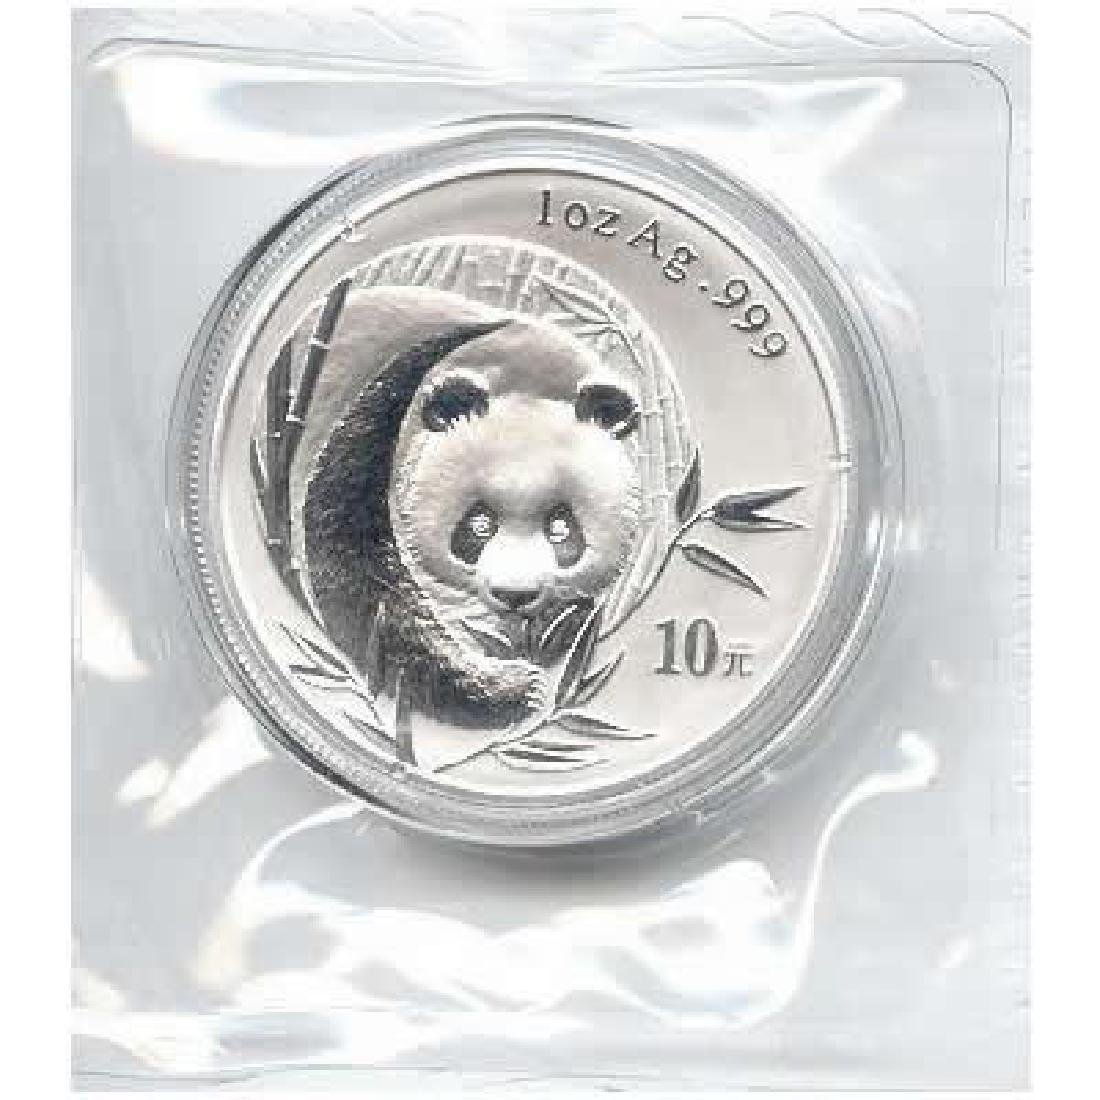 2003 Chinese Silver Panda 1 oz - Frosted Version